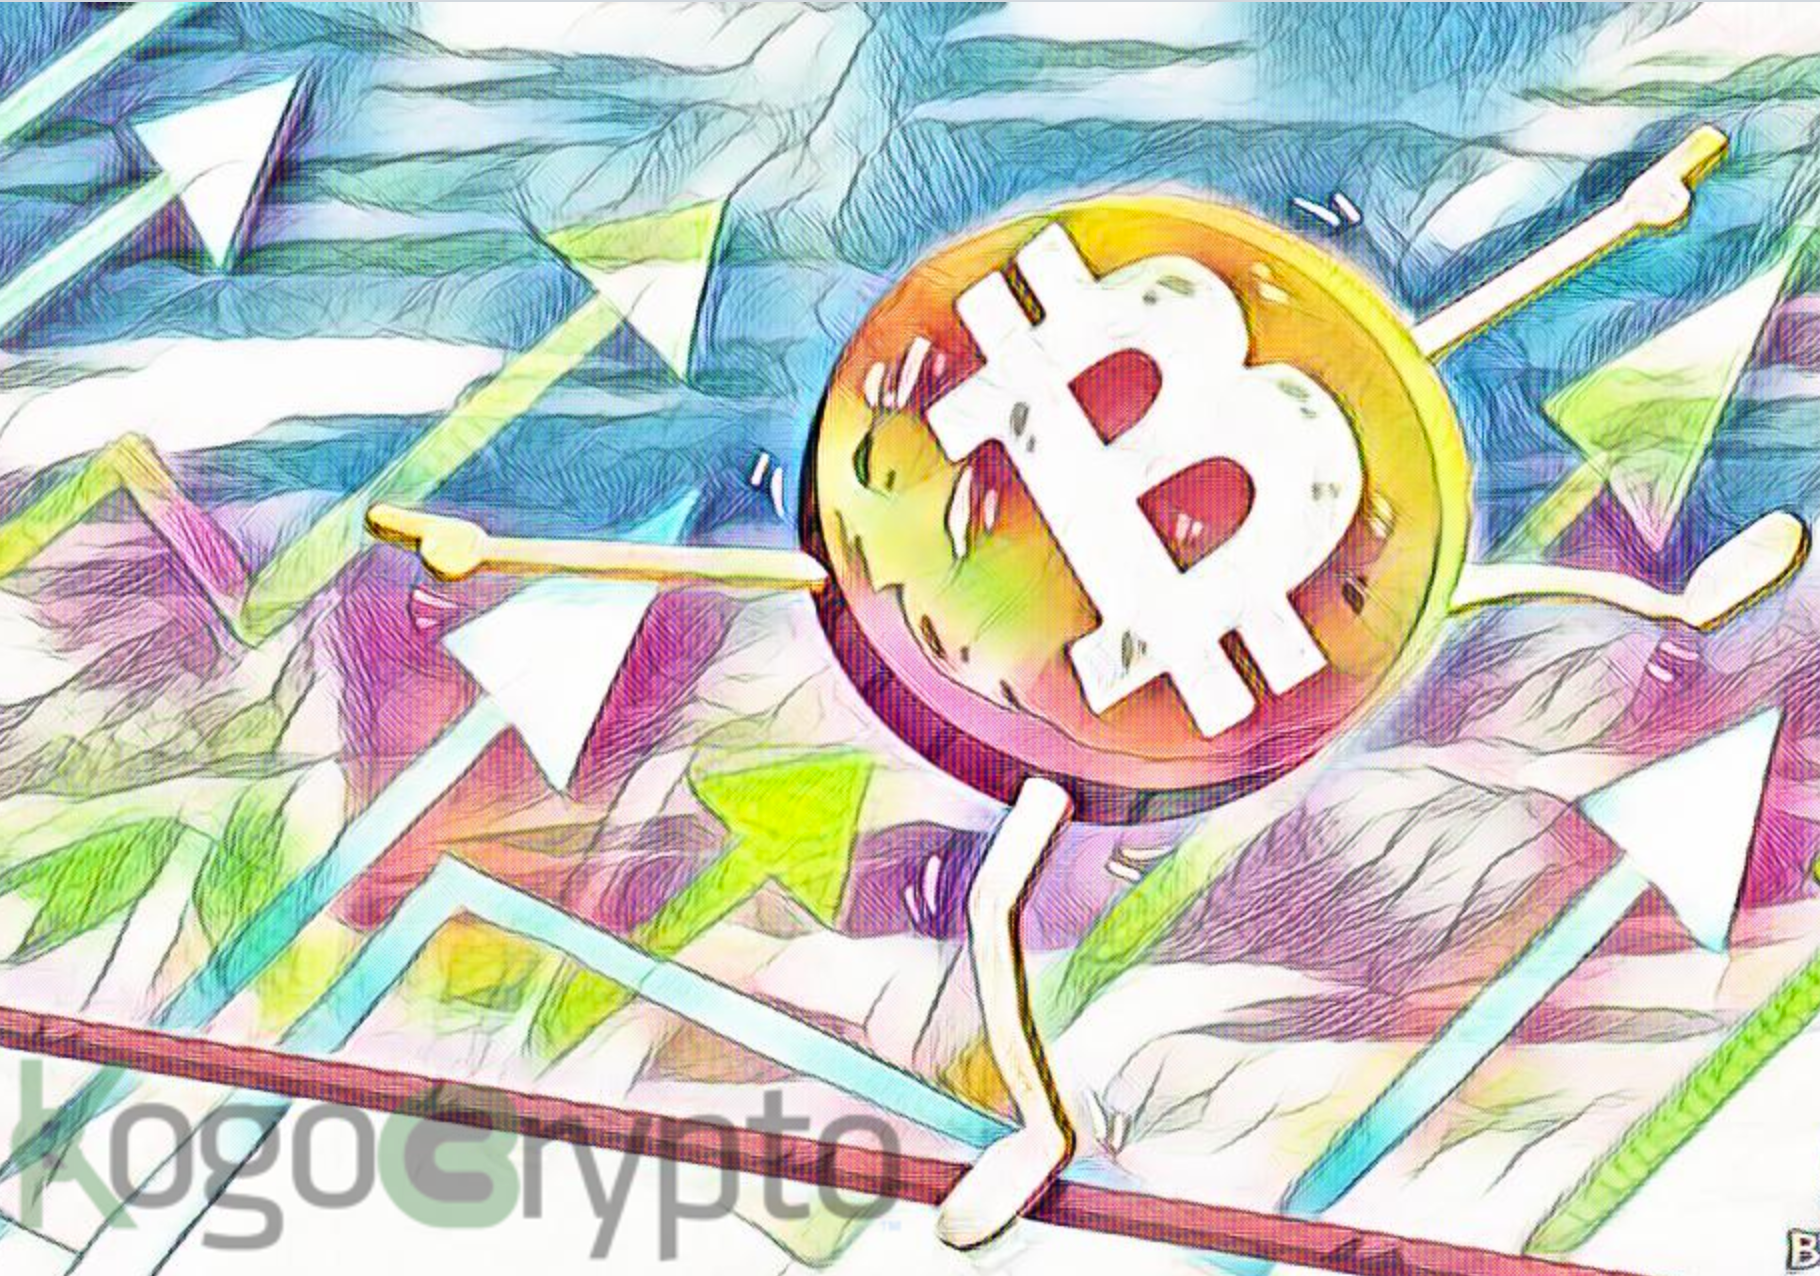 How much Bitcoin is left for retail traders; who pays the price of Bitcoin that institutions control?